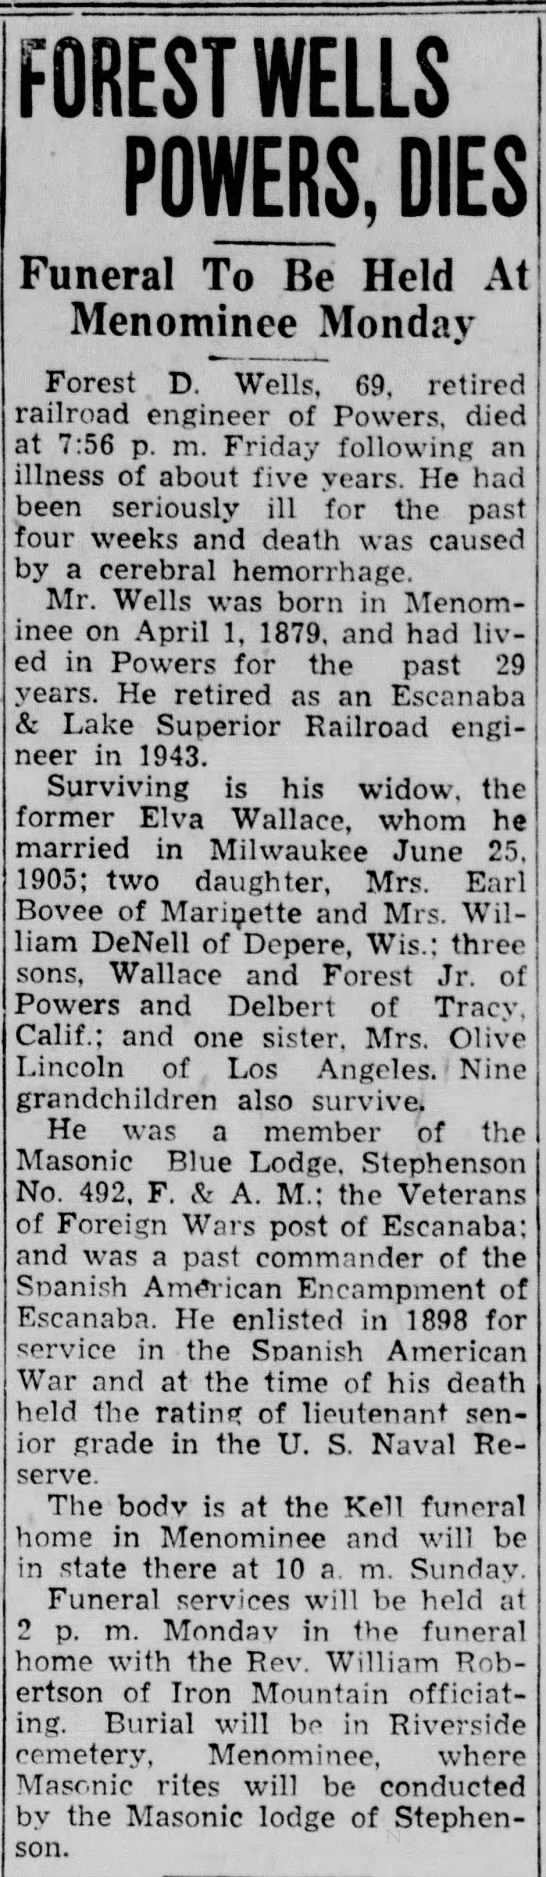 Obit for Forest D. Wells